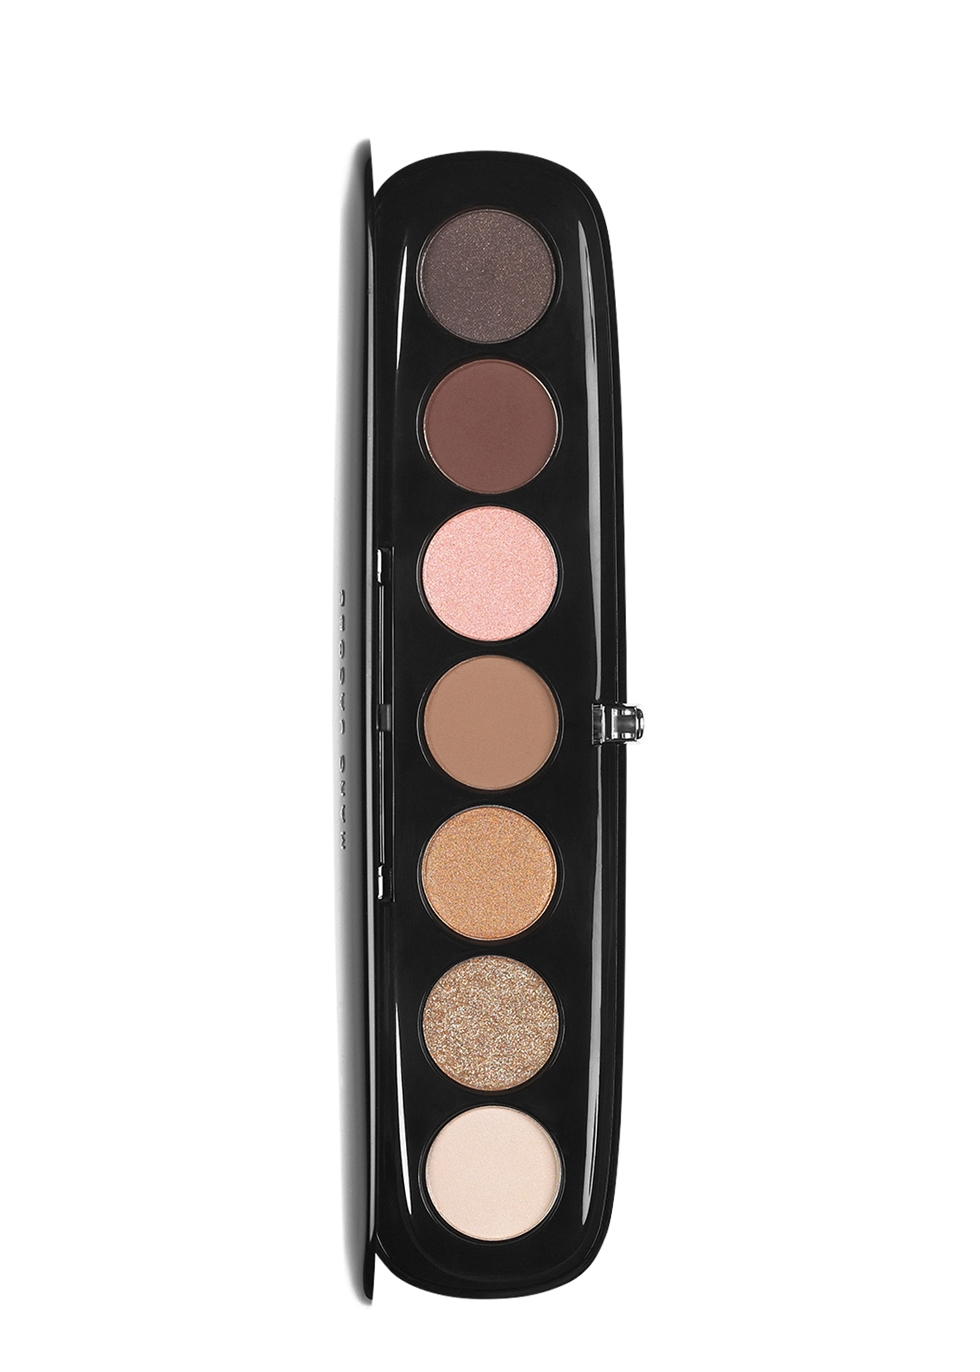 Eye-Conic Multi-Finish Eyeshadow Palette - Glambition - MARC JACOBS BEAUTY